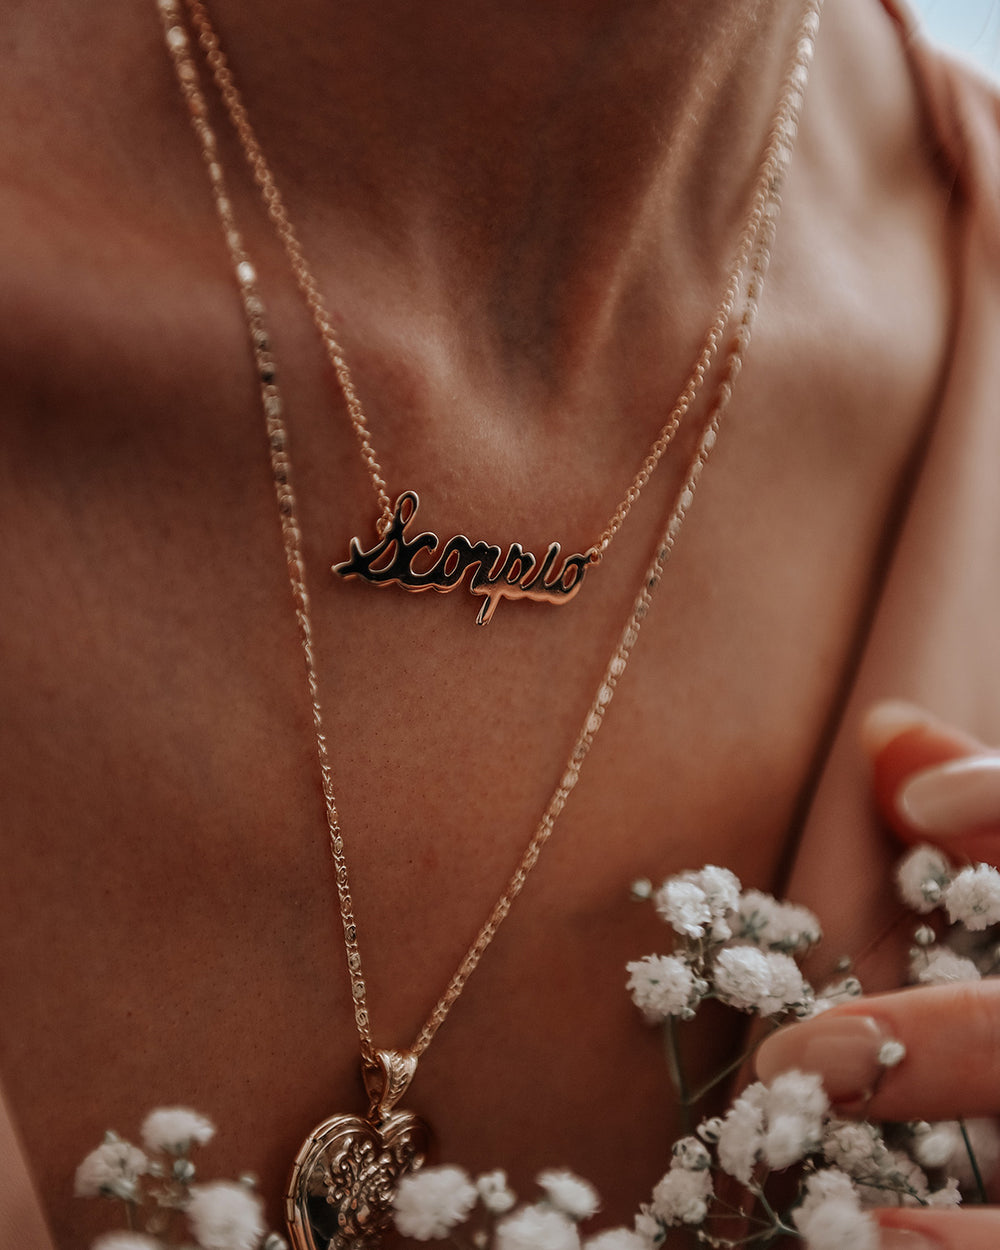 Scorpio Zodiac Nameplate Necklace